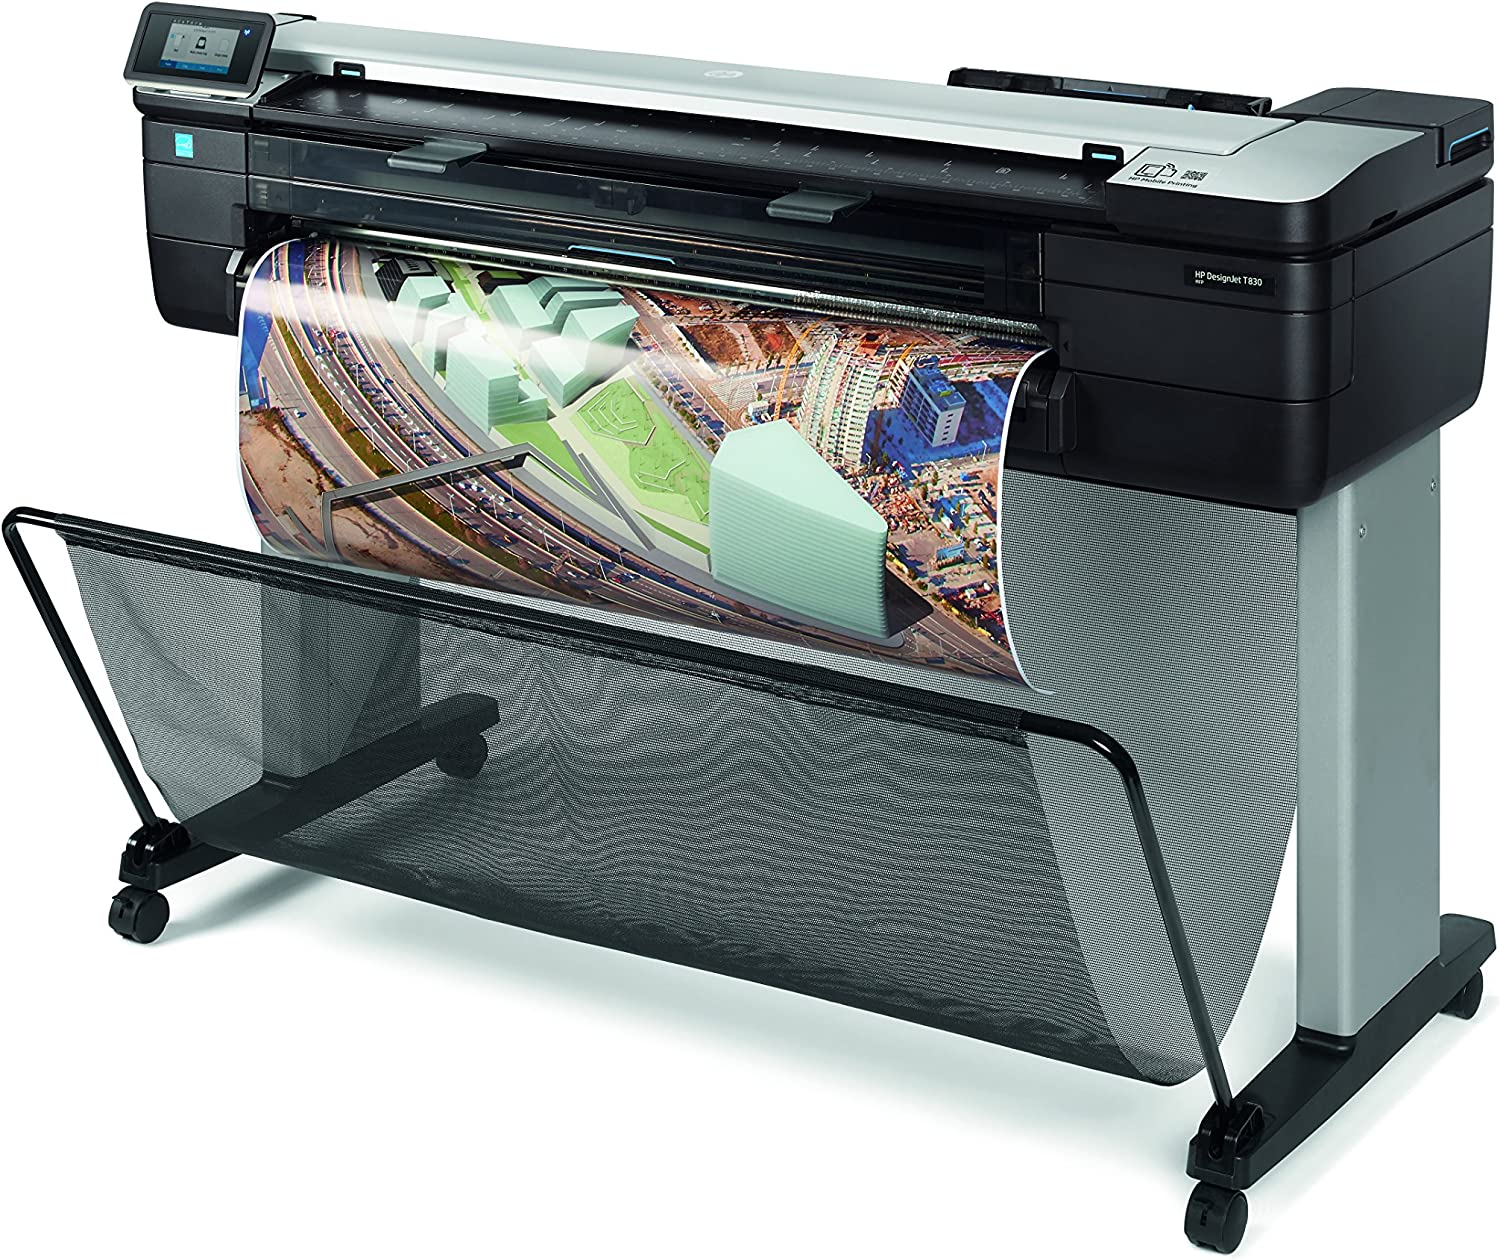 Amazon.com: HP Designjet T830 36-in MFP: Office Products